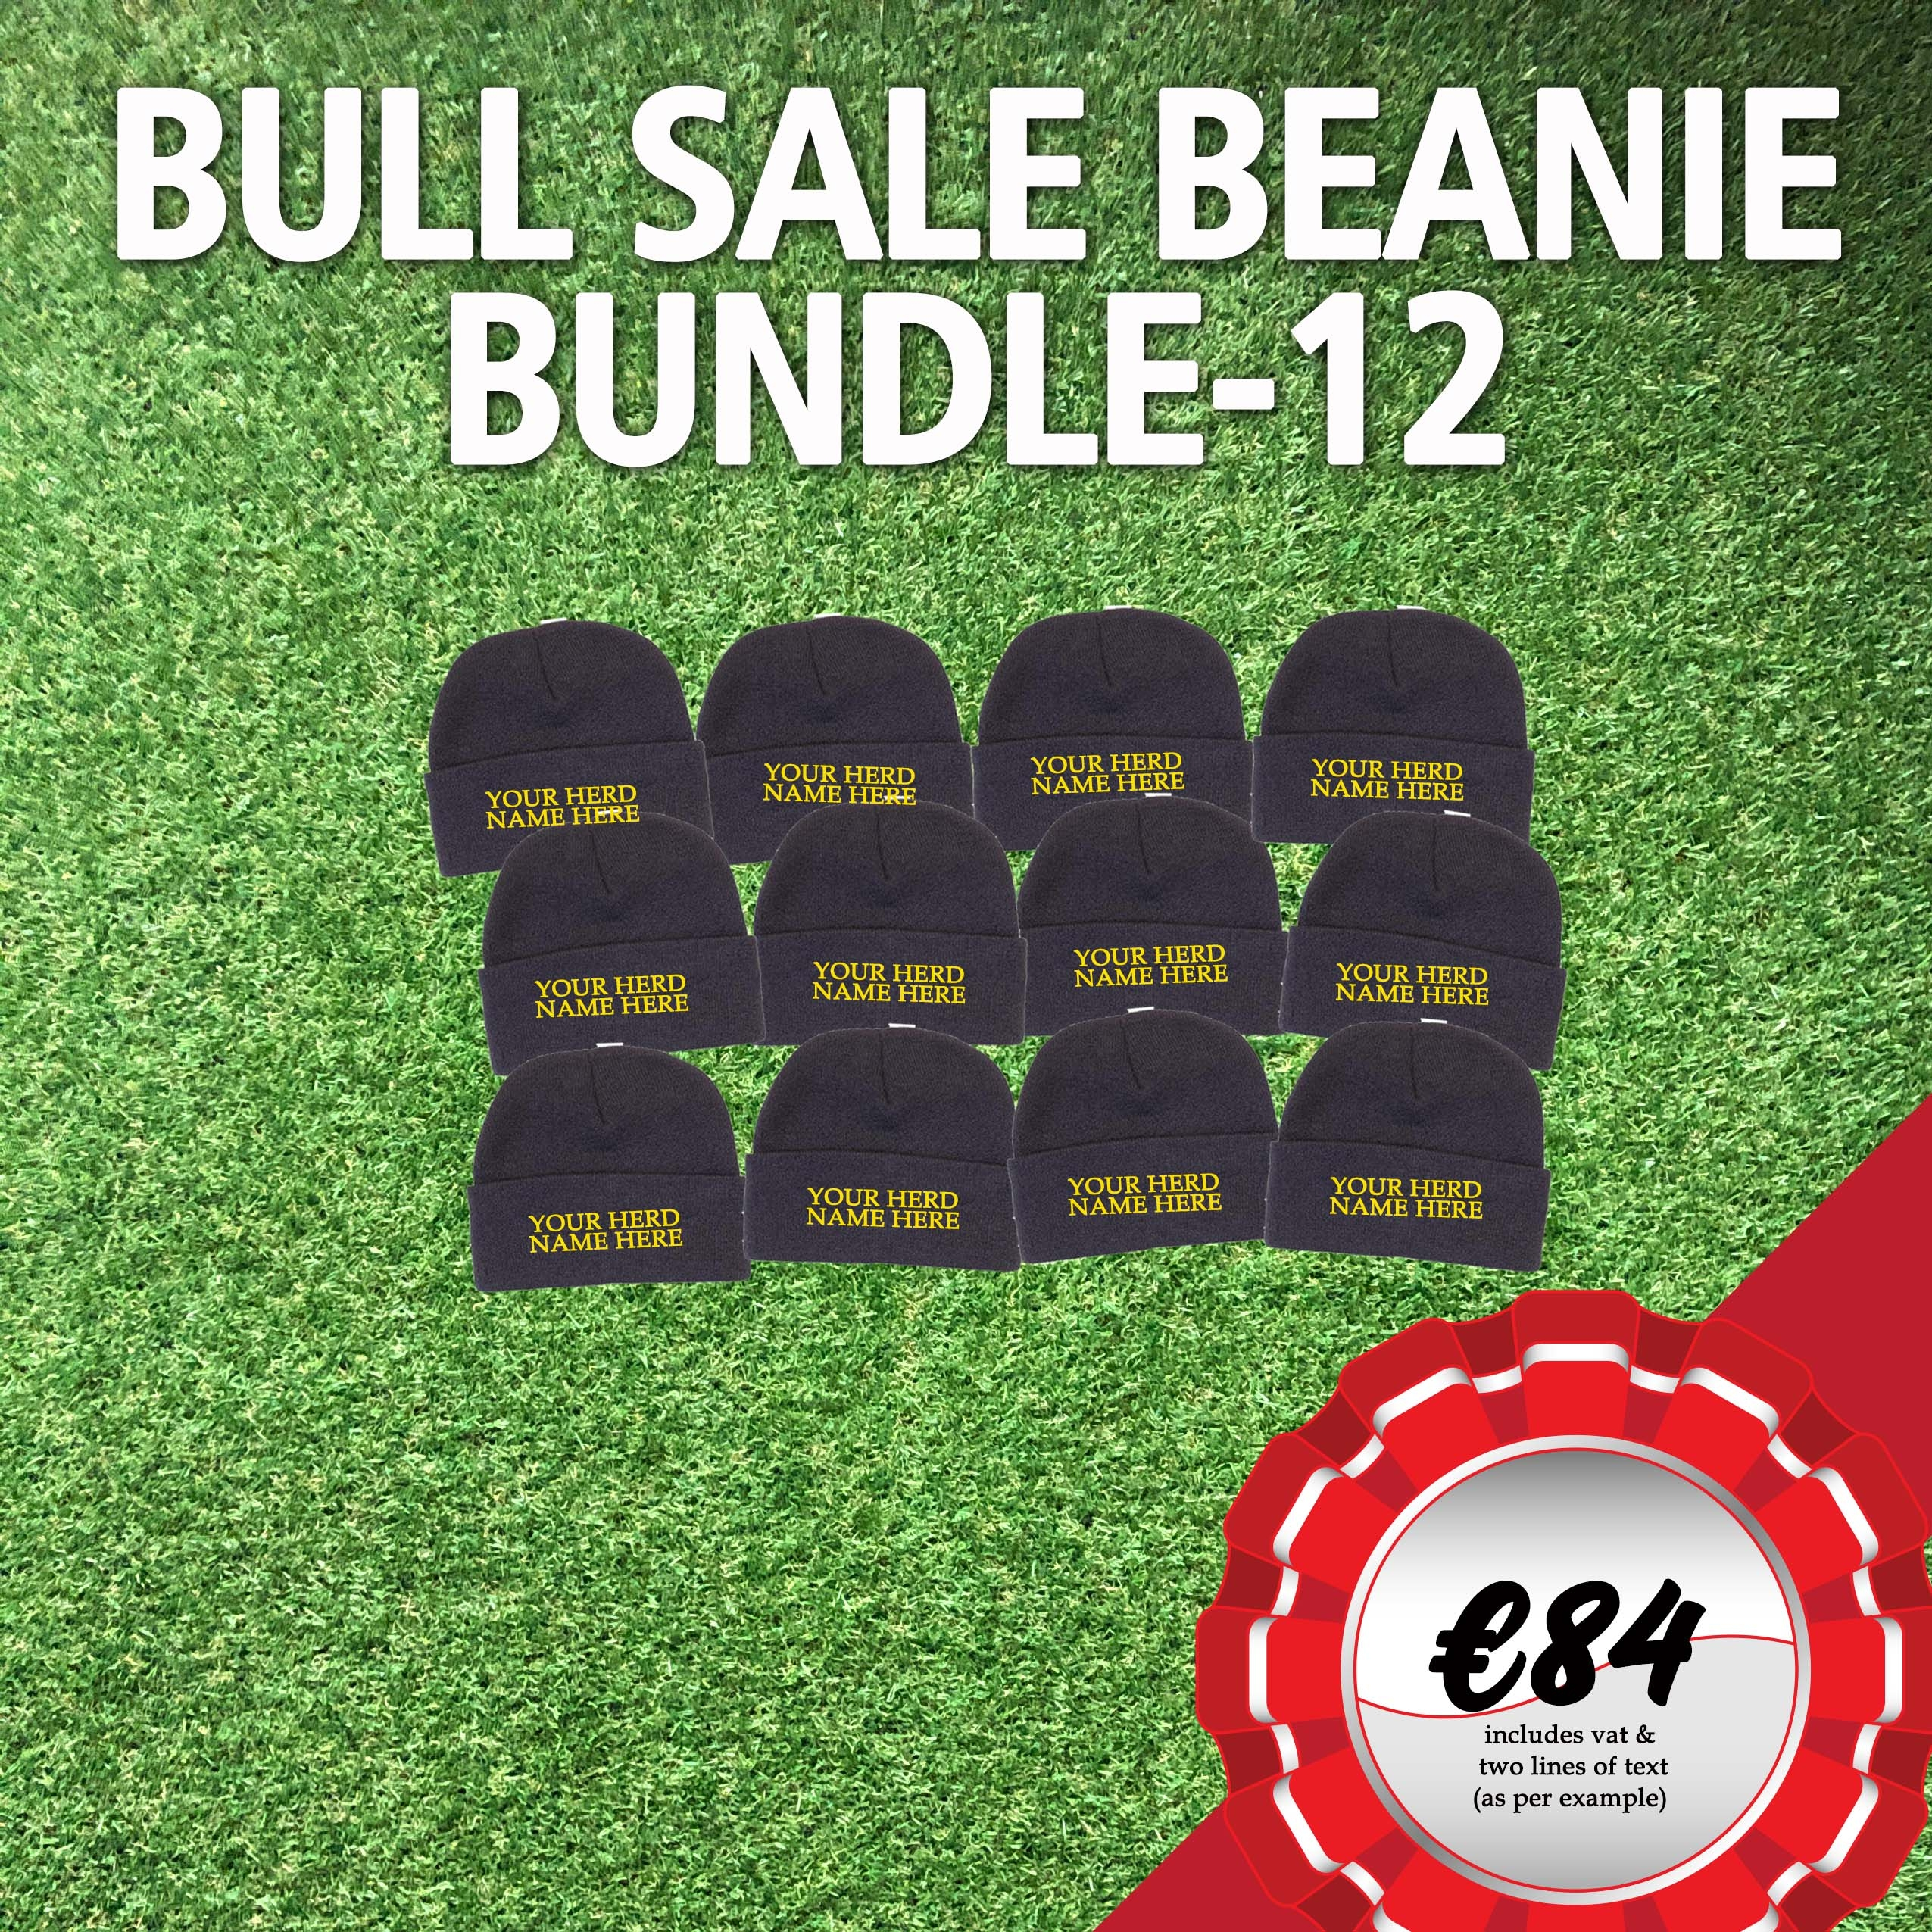 Bull Sale Bundle – 12 Beanies with your Herd Name